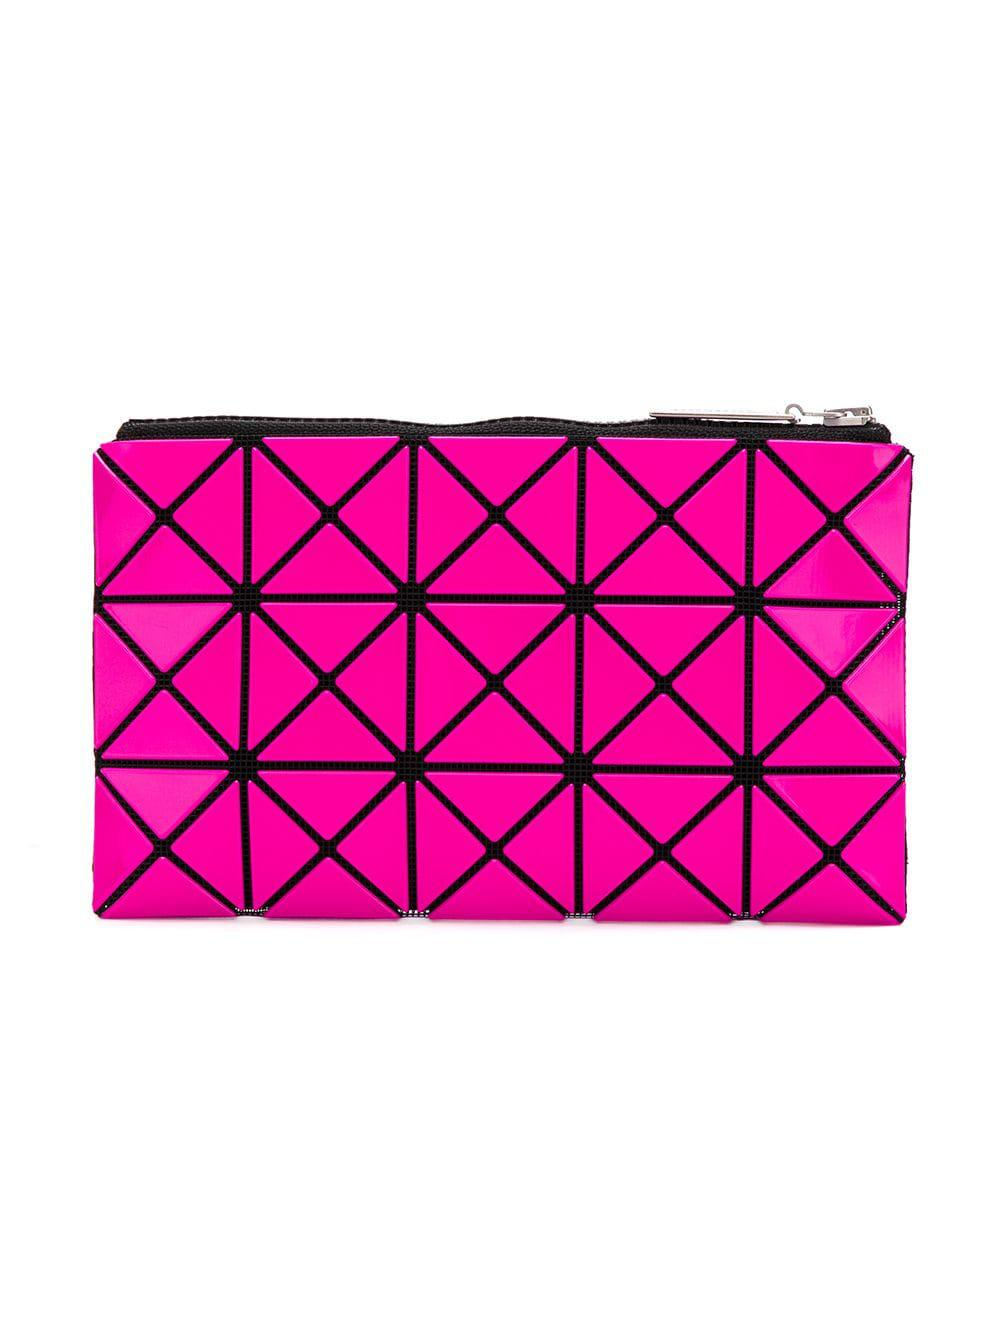 d44cc6701406 Lyst - Bao Bao Issey Miyake Prism Clutch Bag in Pink - Save  6.995884773662553%